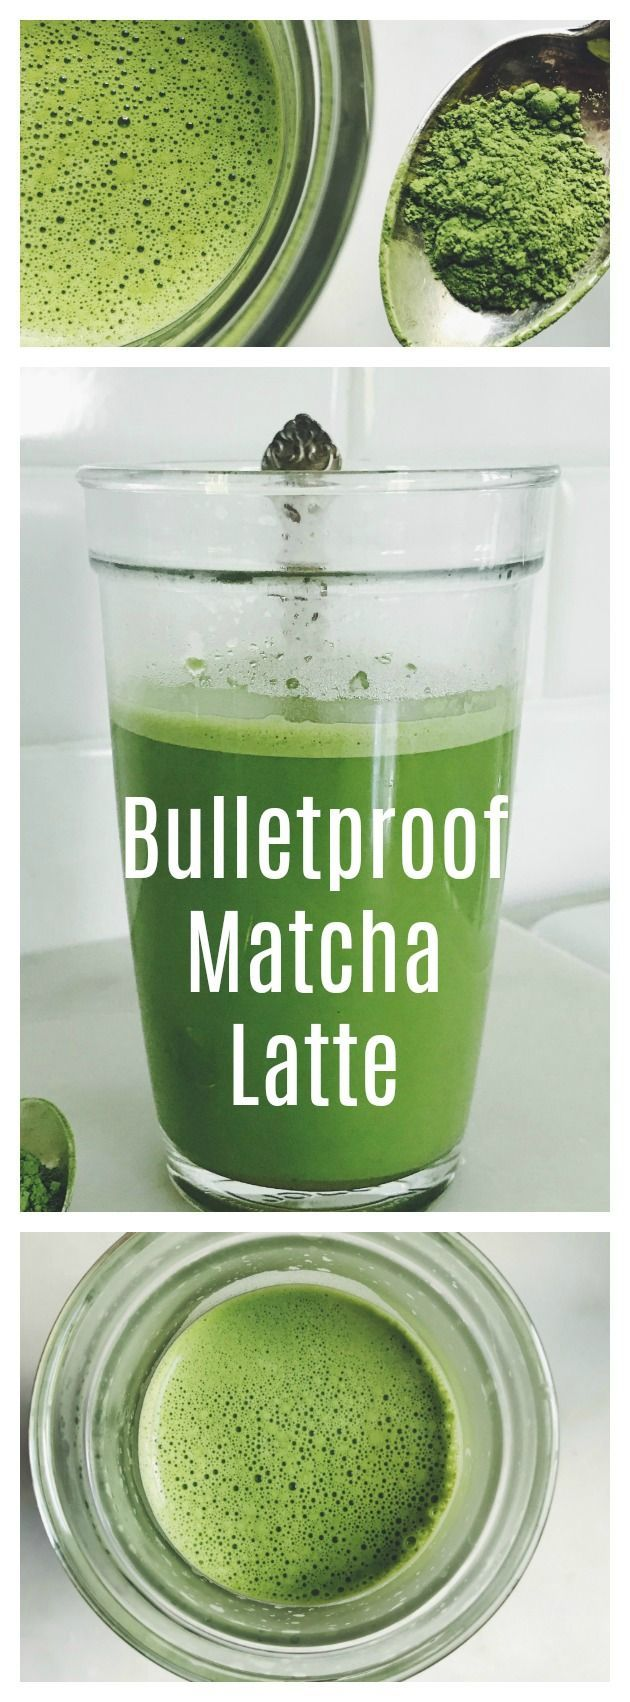 Relax with a Bulletproof Matcha Latte! Click through to read more about the benefits of matcha and brain octane.